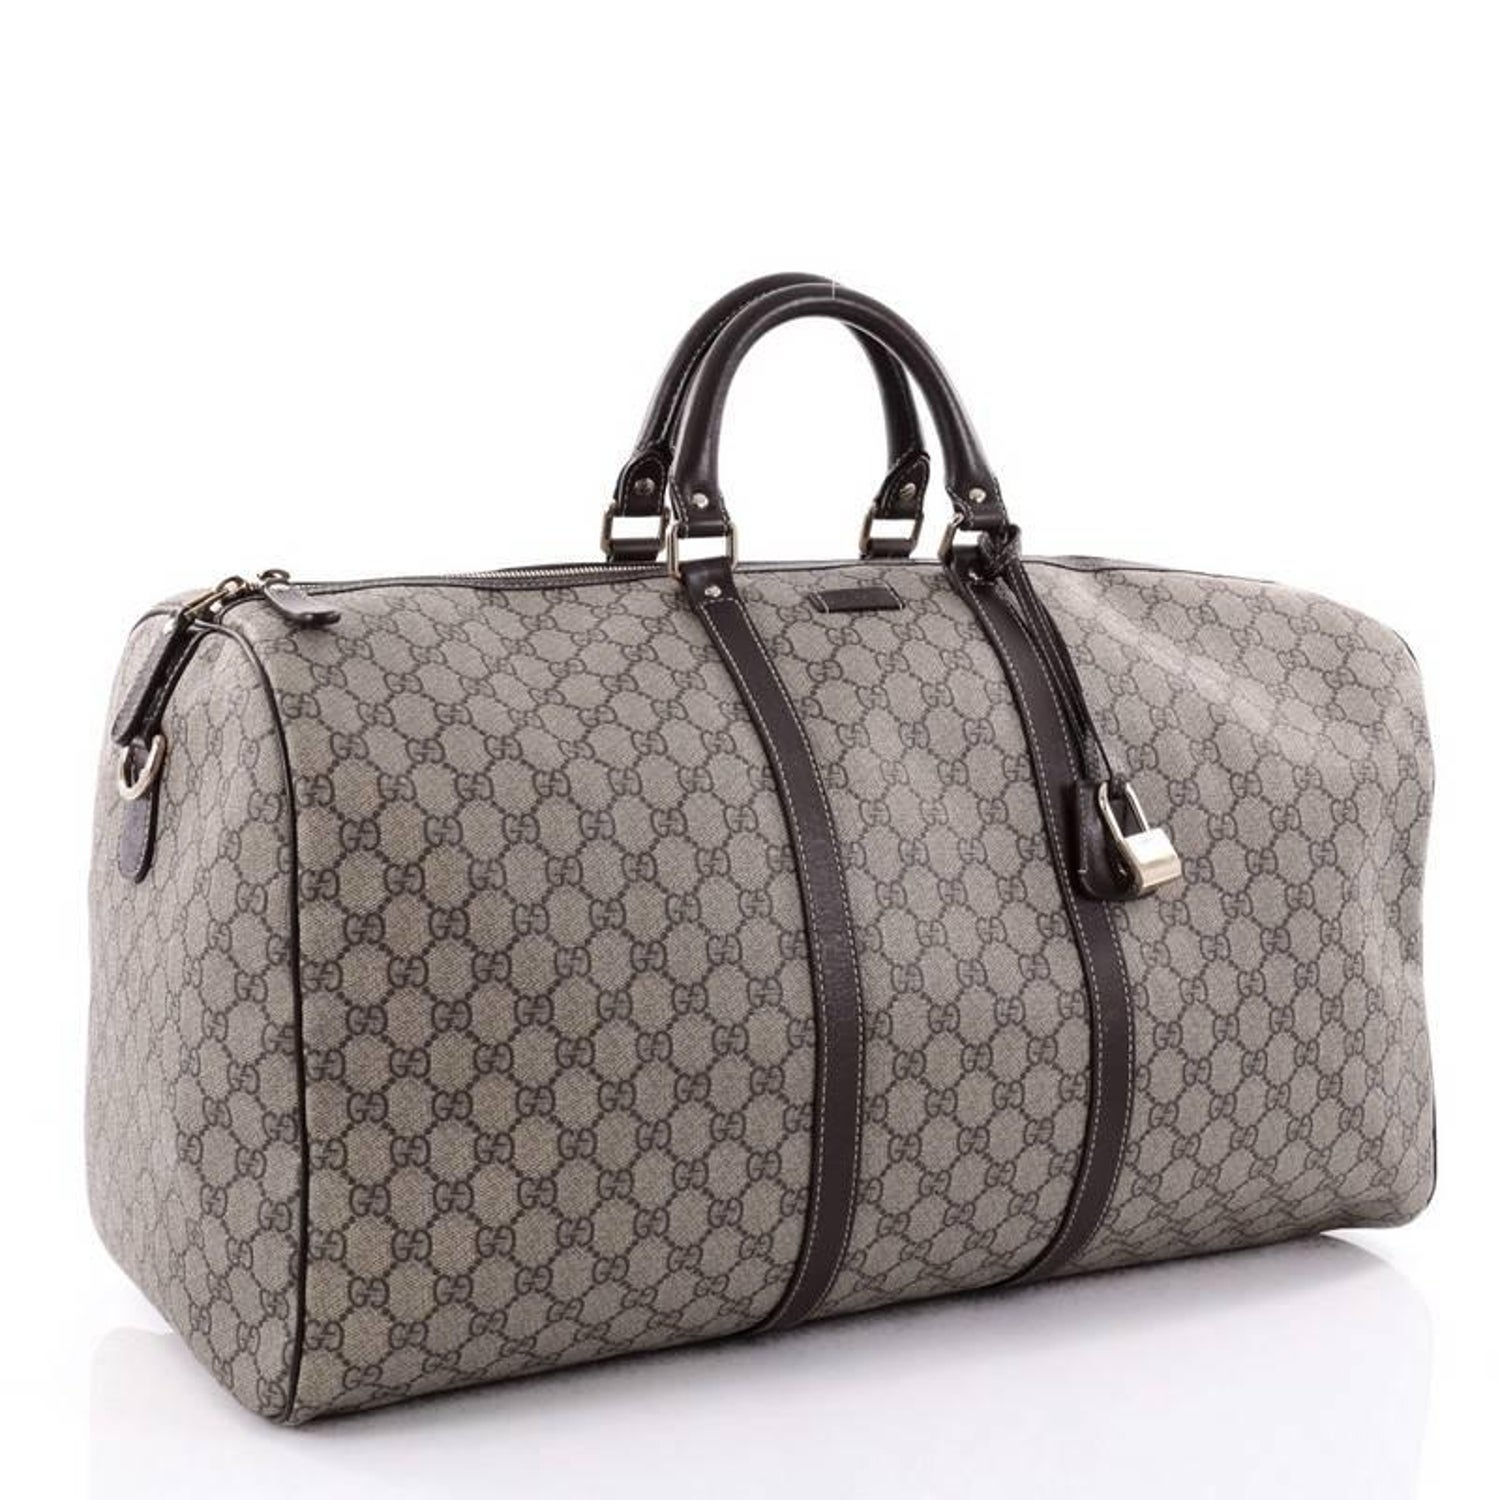 2a181ff2347c Gucci Carry On Convertible Duffle Bag GG Coated Canvas Medium at 1stdibs